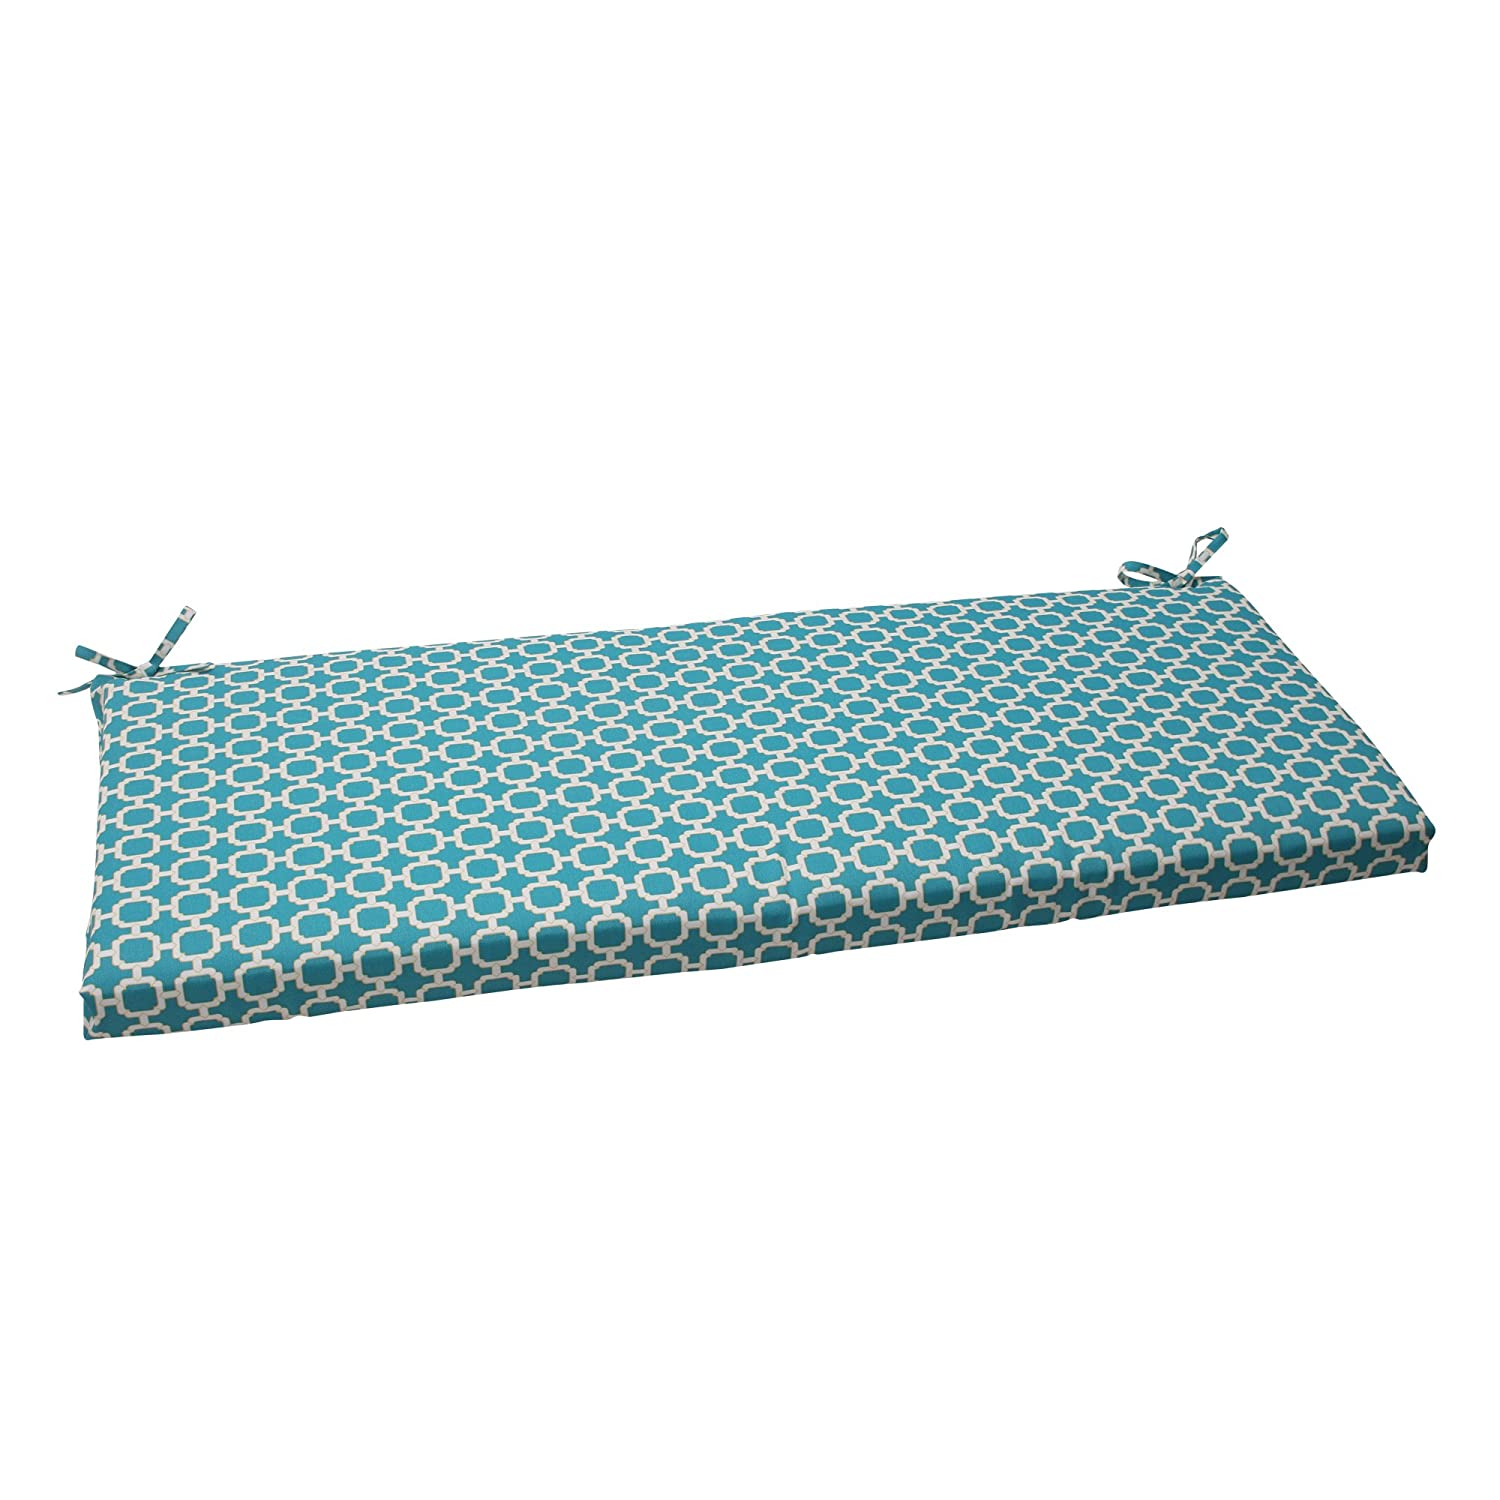 Teal Pillow Perfect Indoor//Outdoor Hockley Bench Cushion